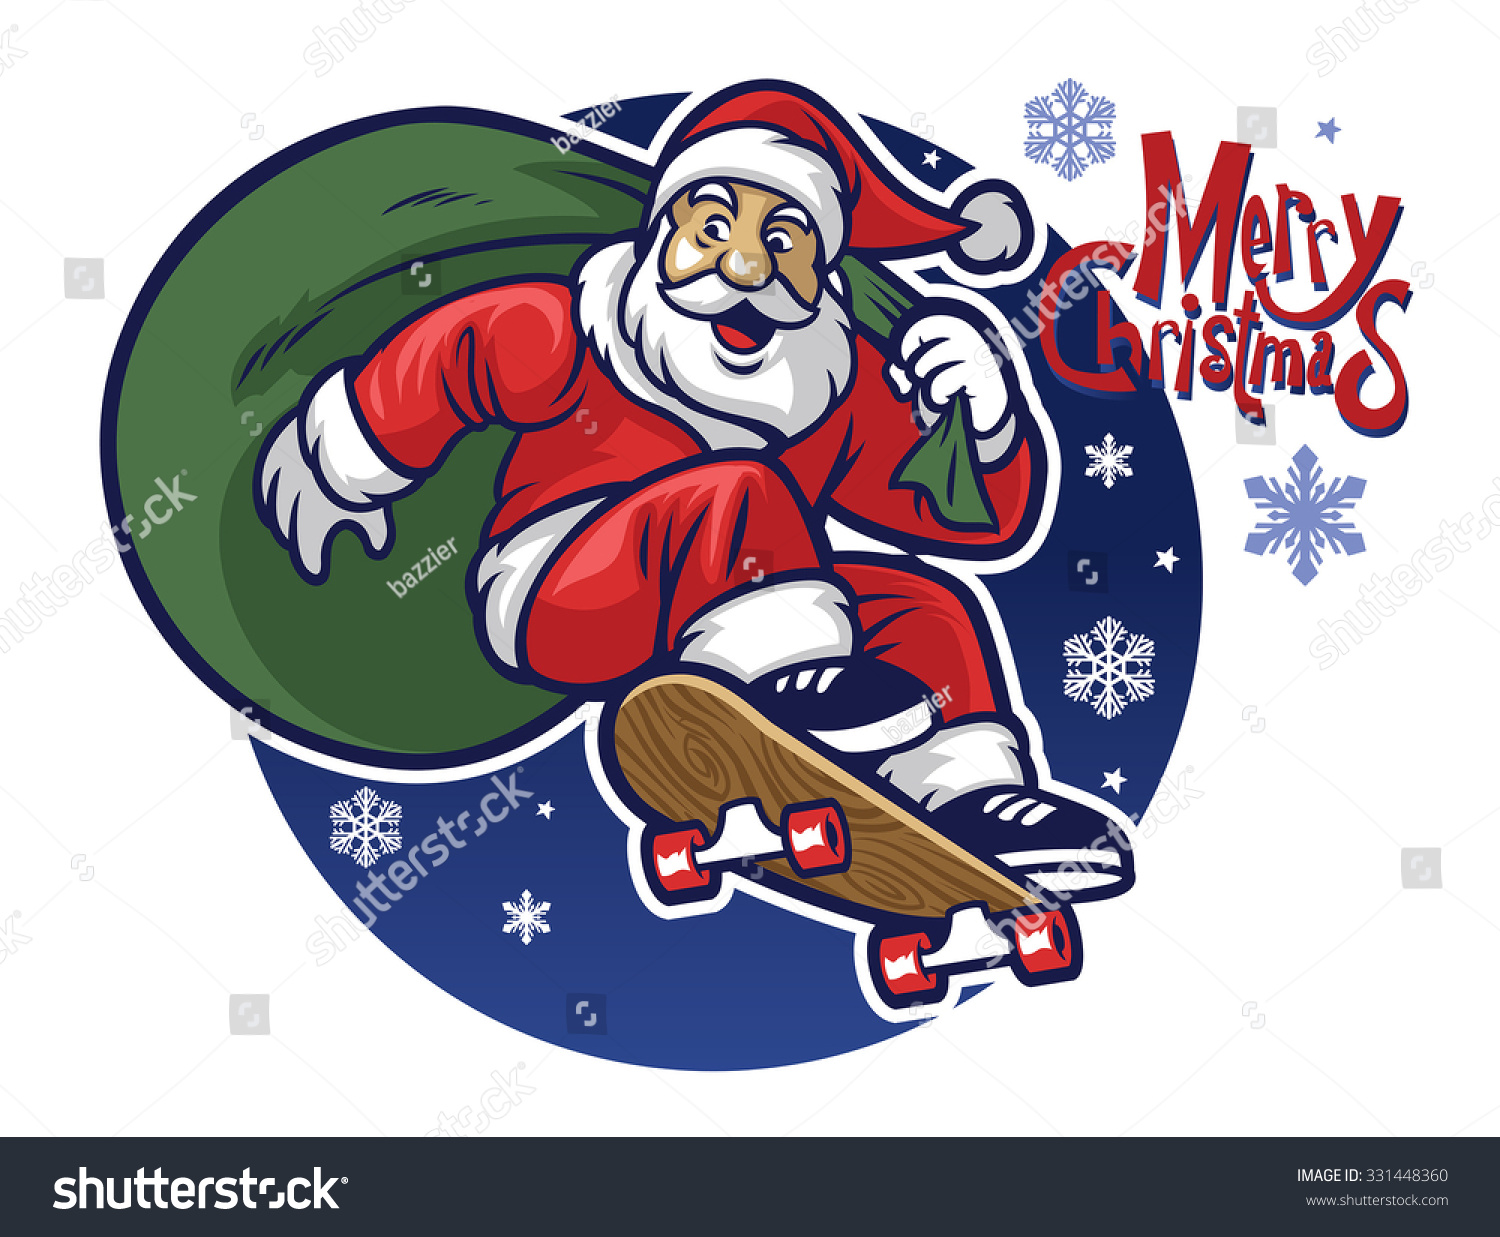 Santa Claus Delivering The Christmas Gift By Riding A Click Santa Claus Skateboard